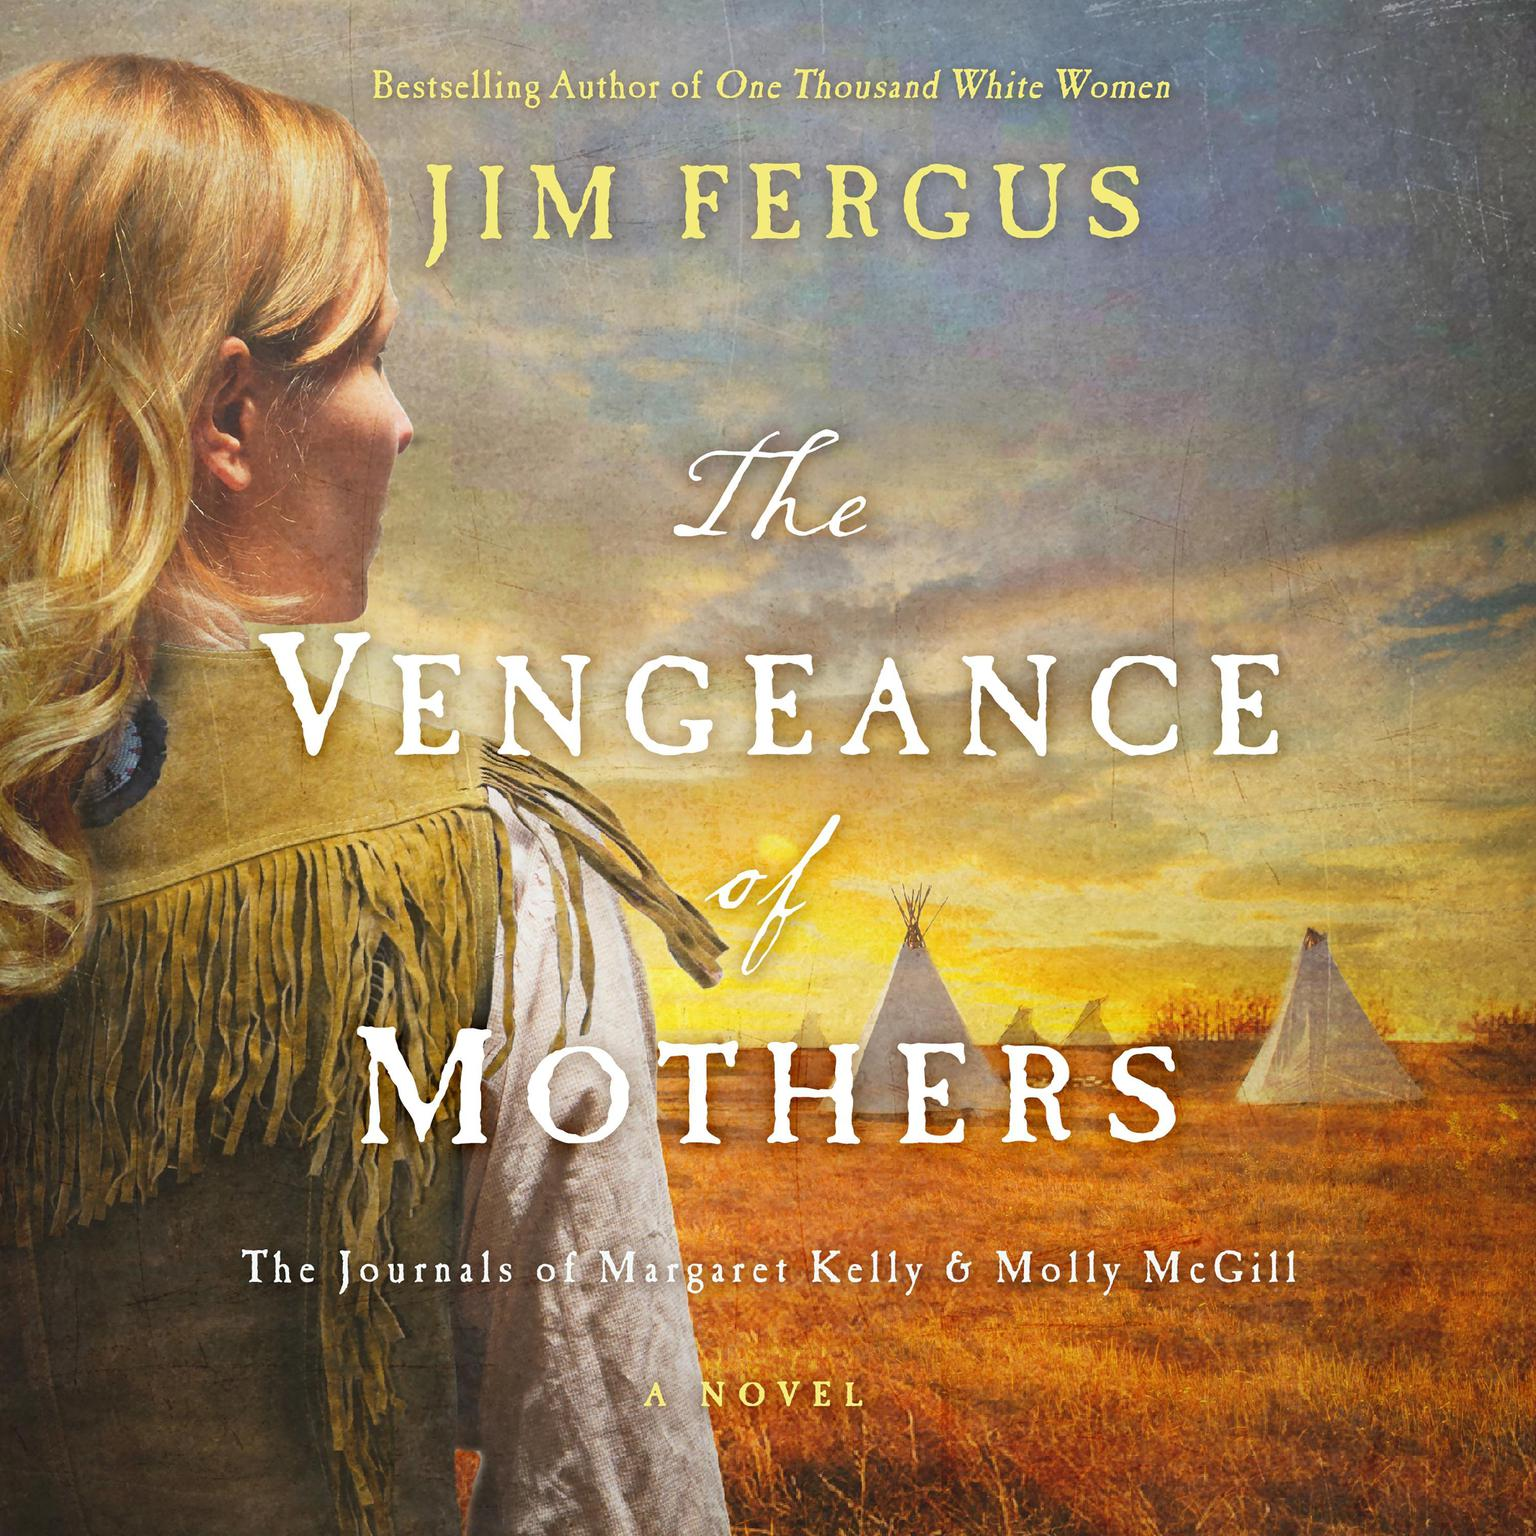 Printable The Vengeance of Mothers: The Journals of Margaret Kelly & Molly McGill: A Novel Audiobook Cover Art